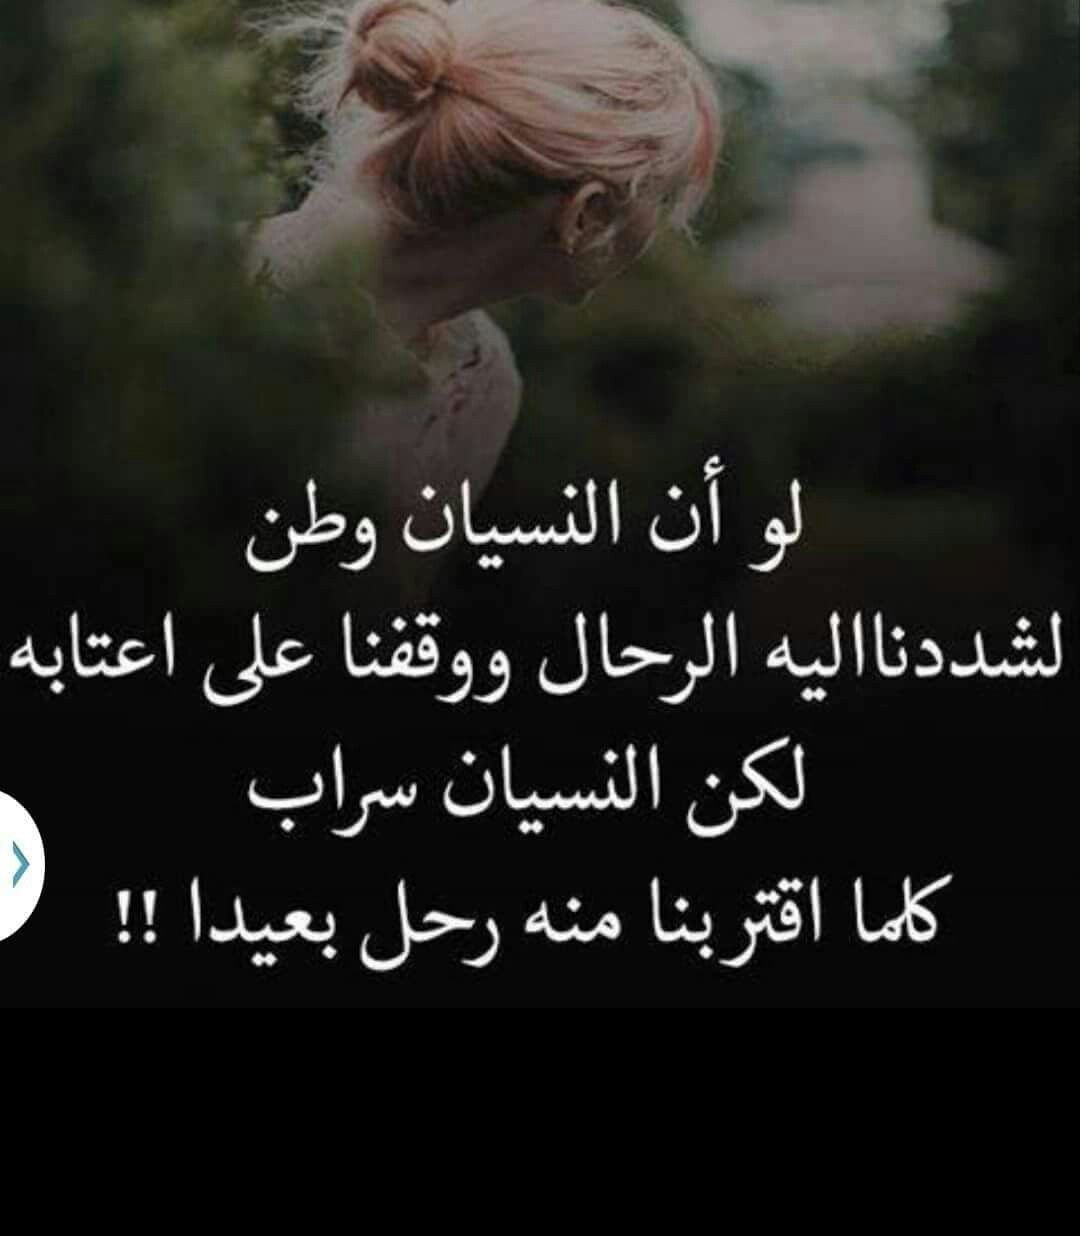 Pin By راقي الحرف On كلمات لها معنى Thoughts Quotes Arabic Quotes Words